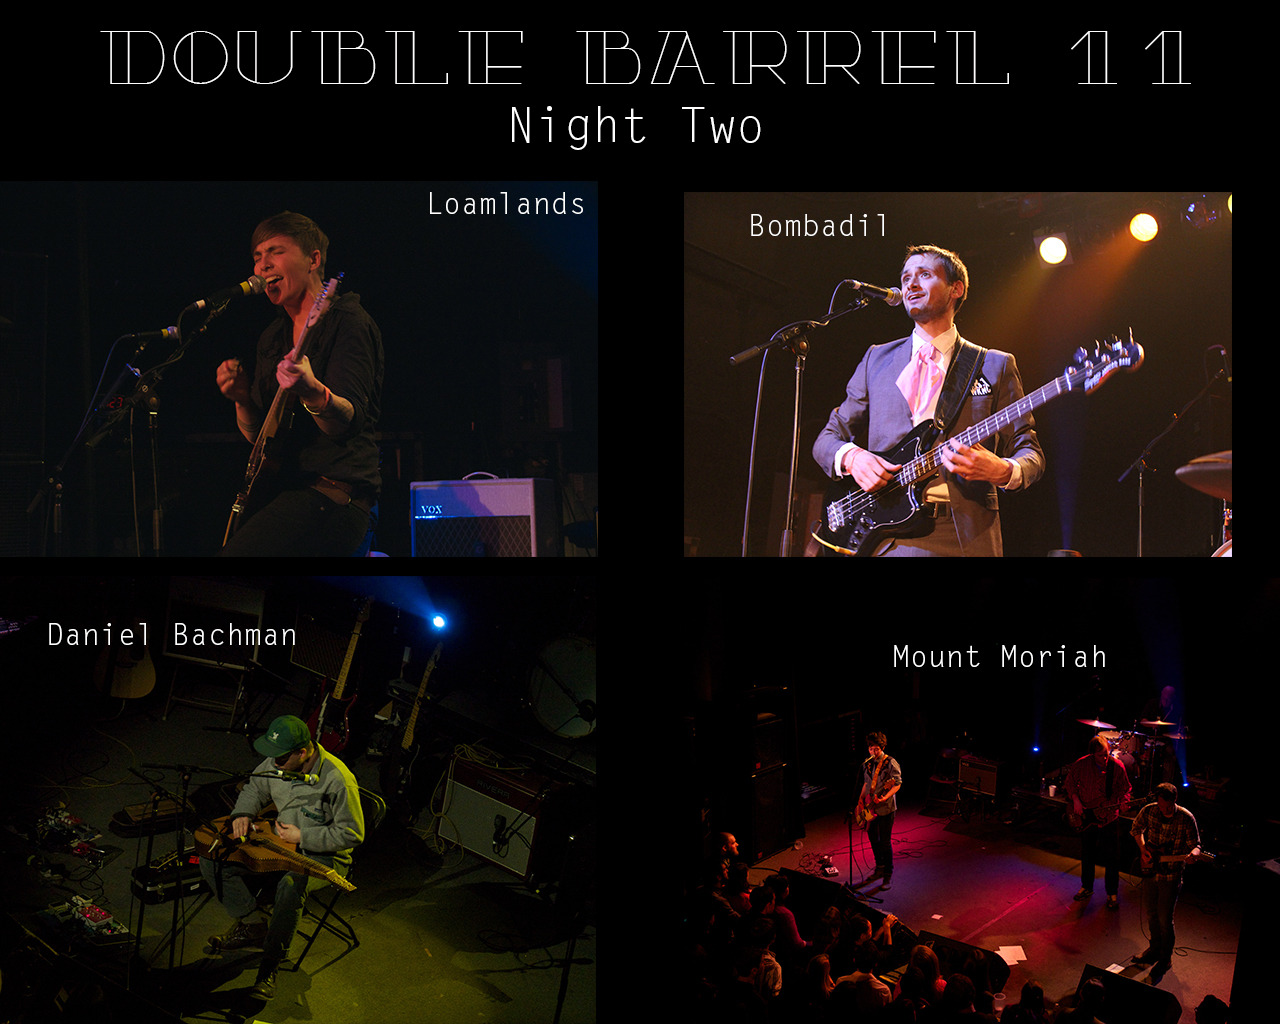 We had a great time our second night of Double Barrel Benefit 11. We had the pleasure of Daniel Bachman, Loamlands, Bombadil, and Mount Moriah taking the stage for a packed crowd at Lincoln Theatre.  All of us at WKNC are so grateful for everyone that once again came out and made DBB 11 a success!